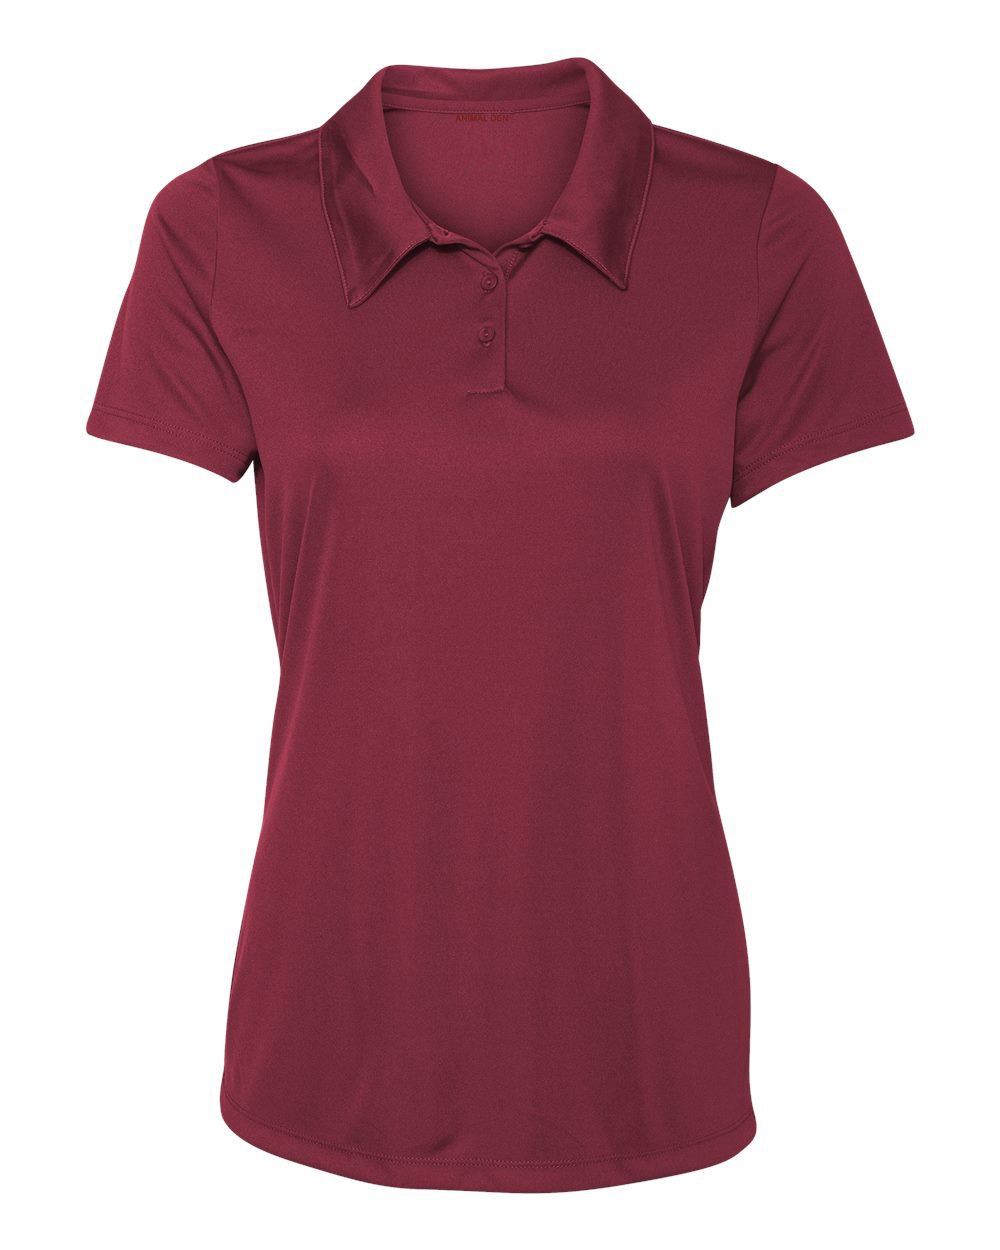 Women's Dry-Fit Golf Polo Shirts 3-Button Golf Polo's in 20 Colors XS-3XL Shirt MAROON-L by Animal Den